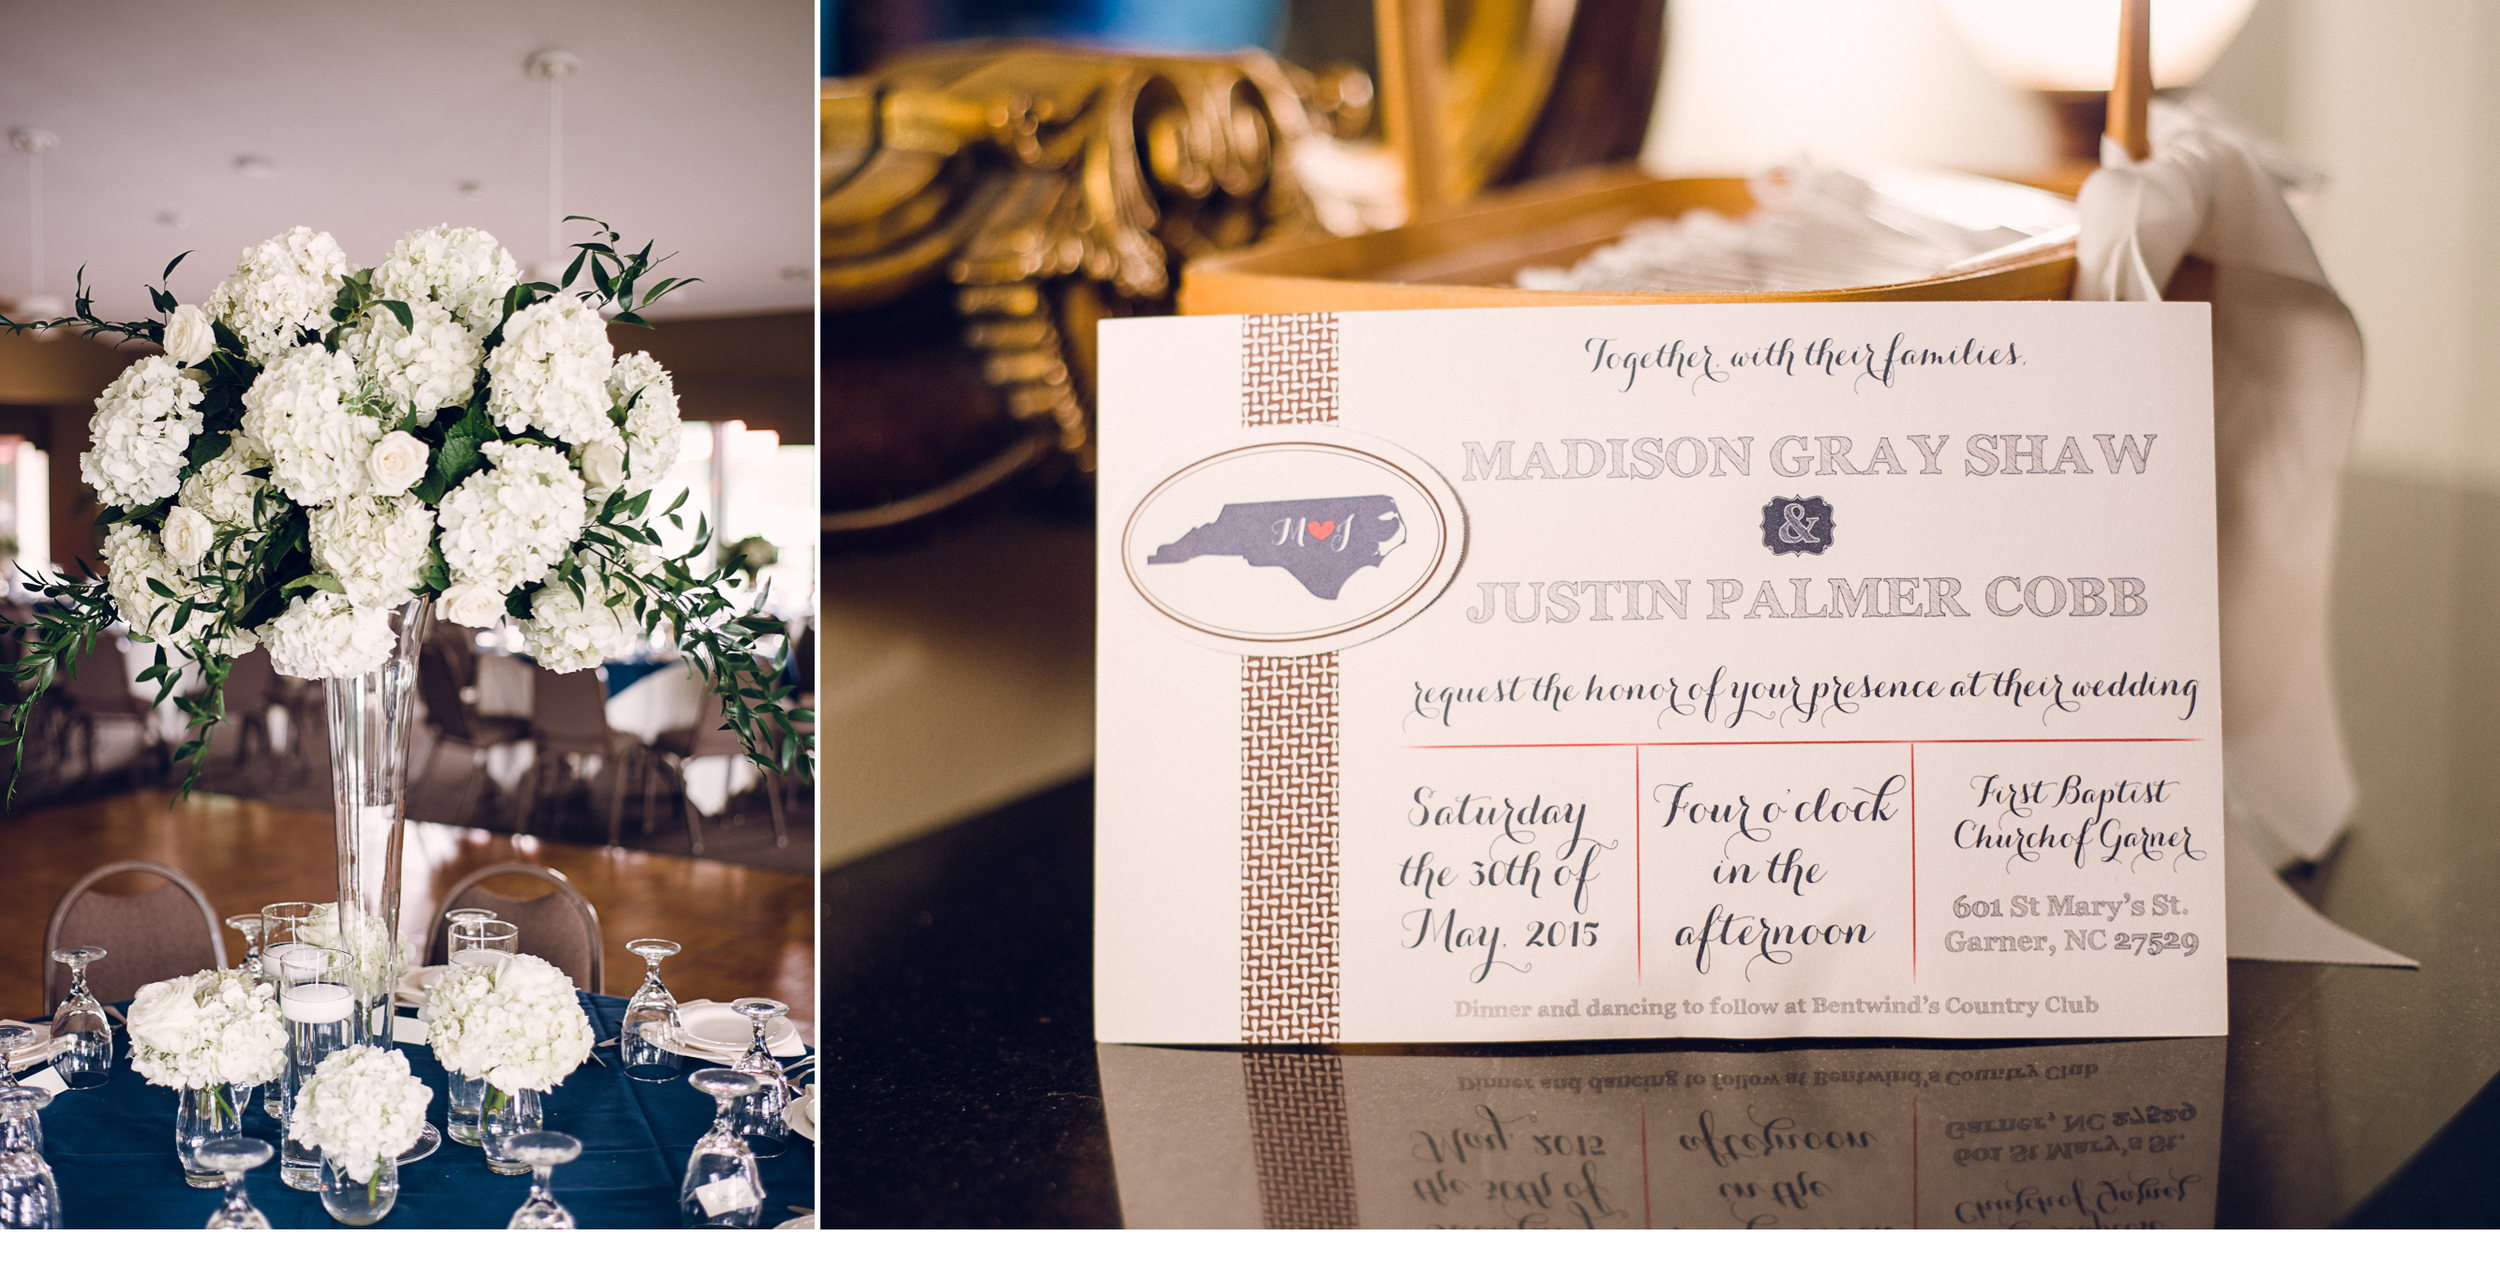 Cobb Wedding Invitation